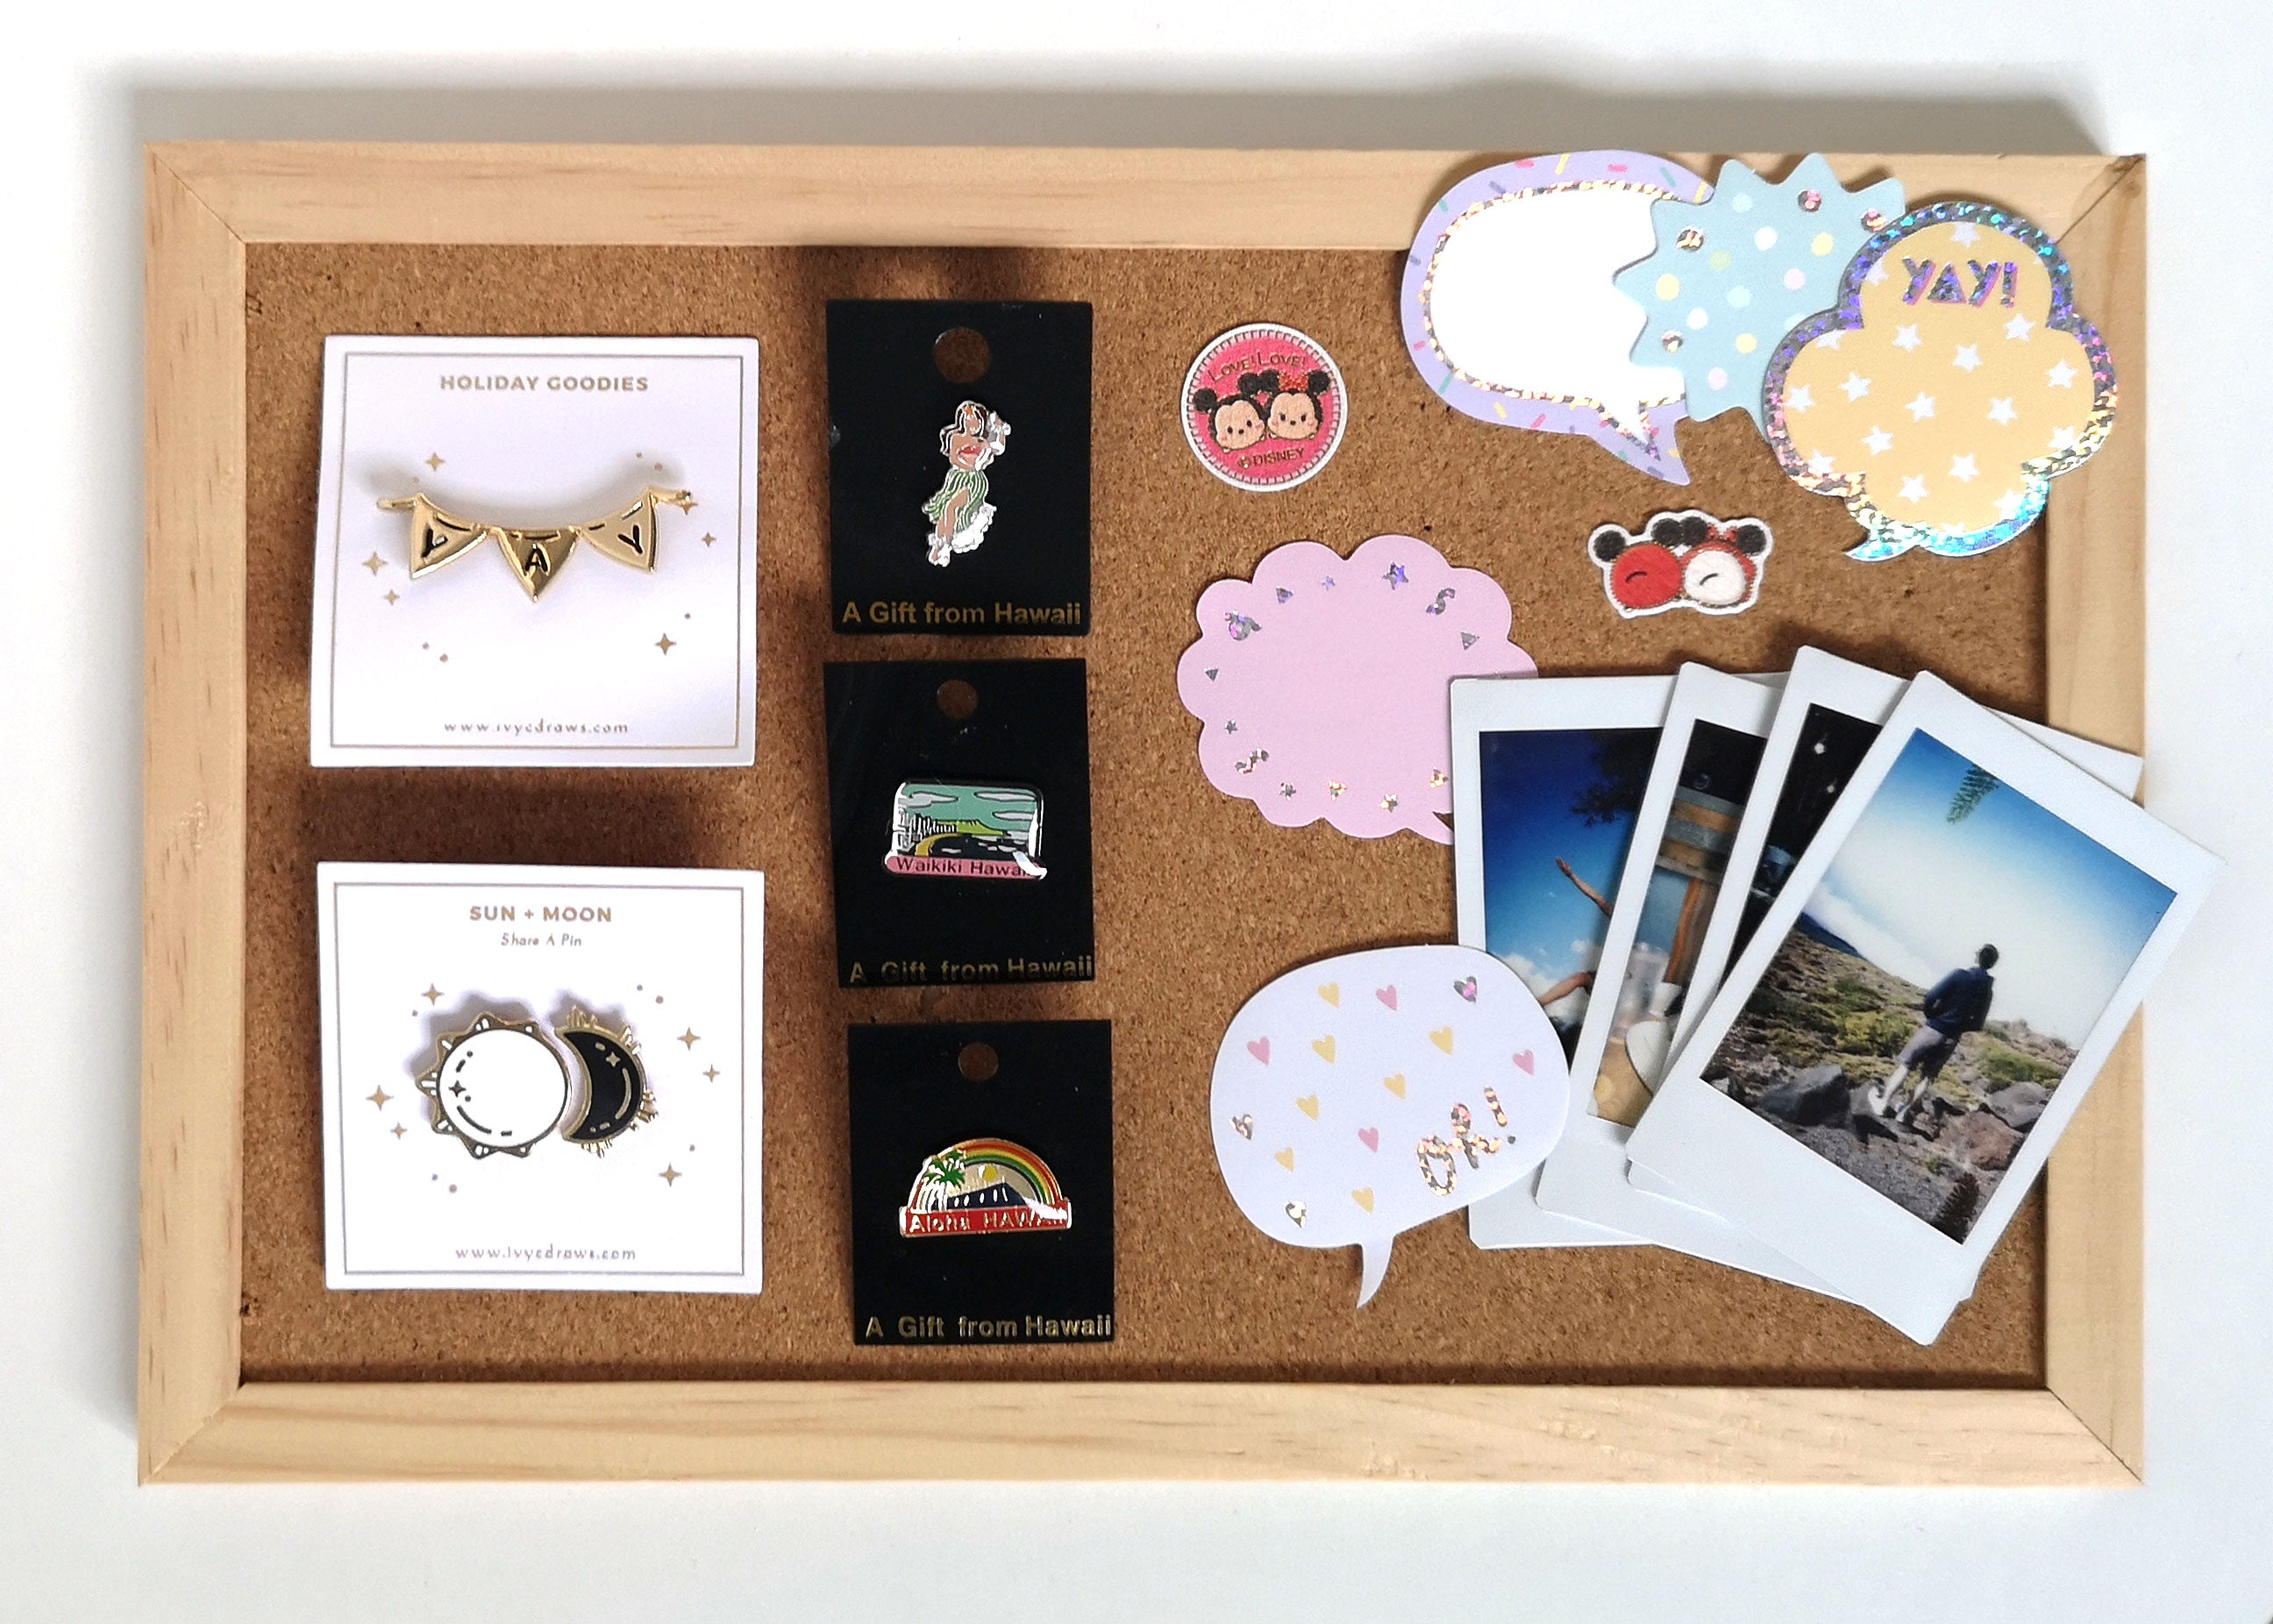 enamel pins, stickers, souvenirs, and polaroids